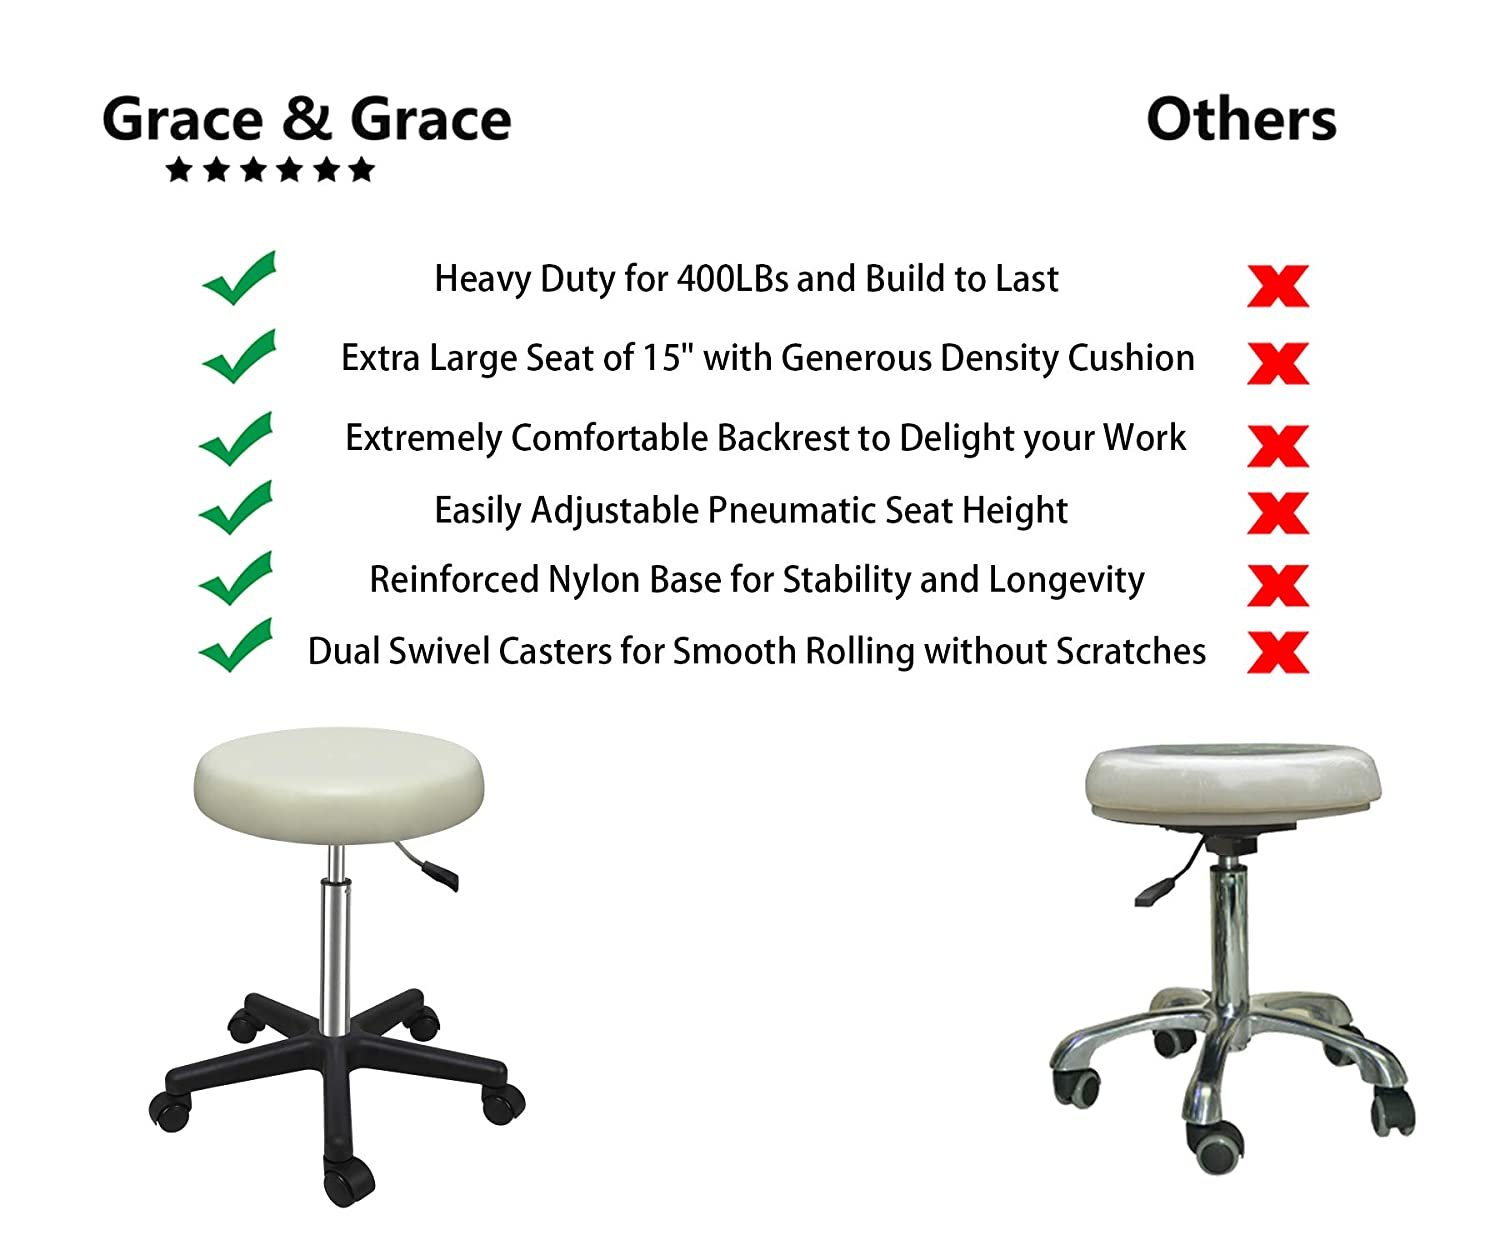 Grace /& Grace Professional Task Stool Chair LUX Series Extra Large Seat Rolling Swivel Pneumatic Adjustable Heavy Duty for Dentist Office and Home Without Backrest Steel Base, Royal Blue Shop